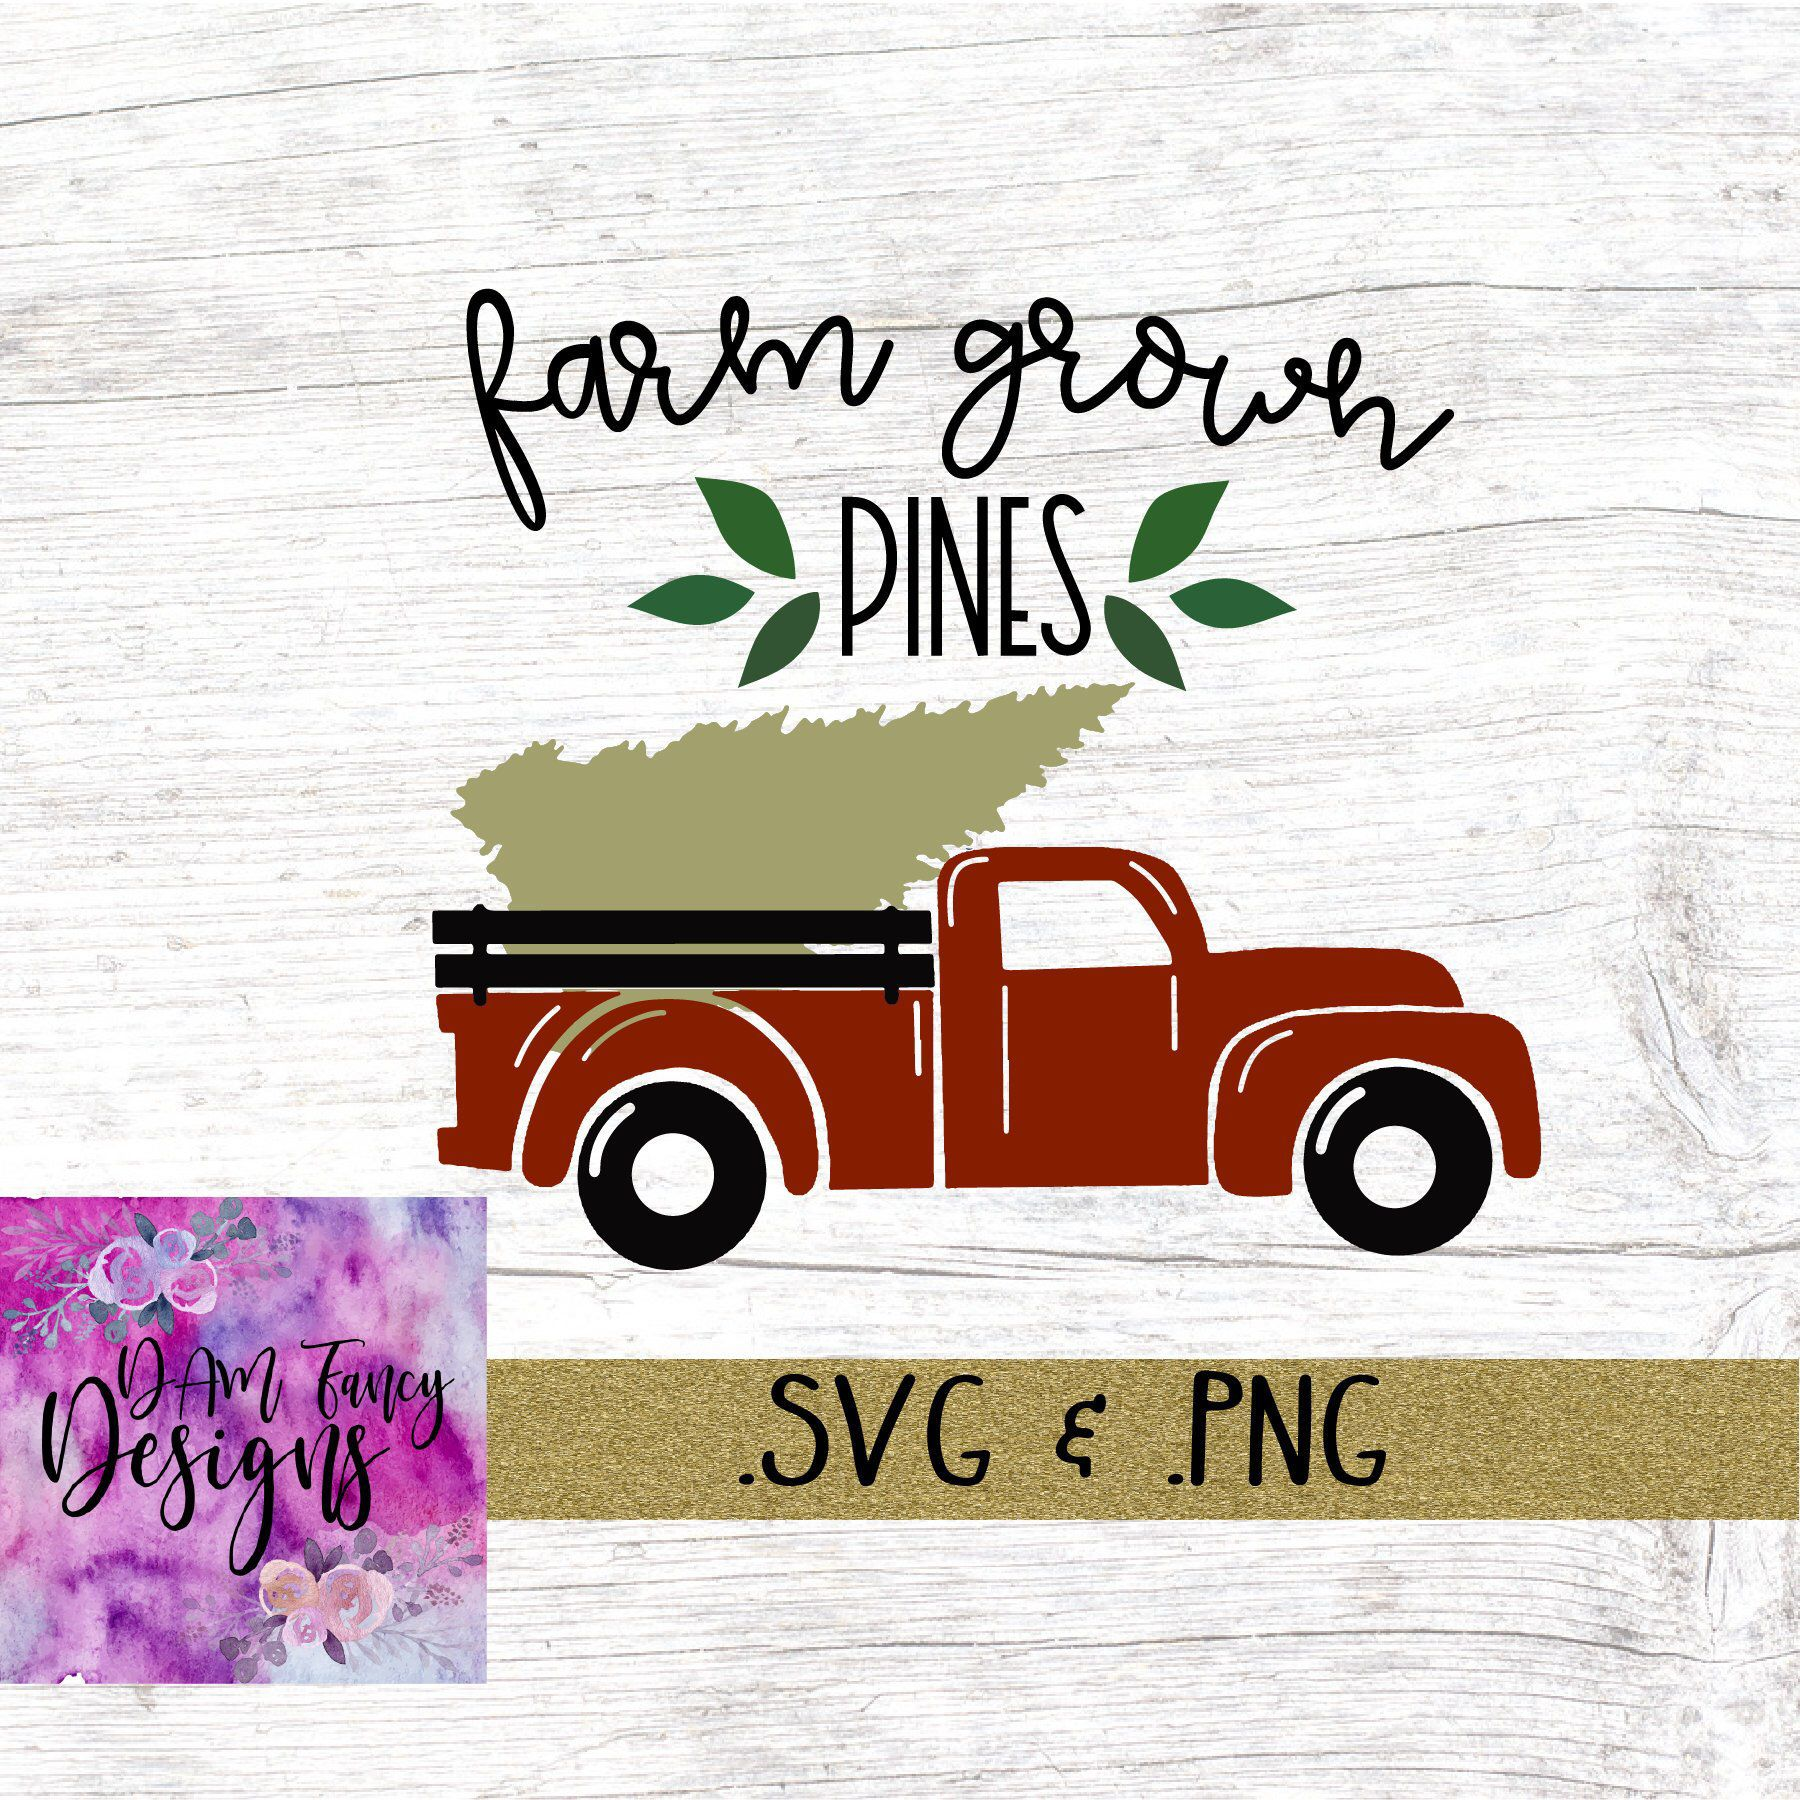 Pin on Svgs printables and cut files